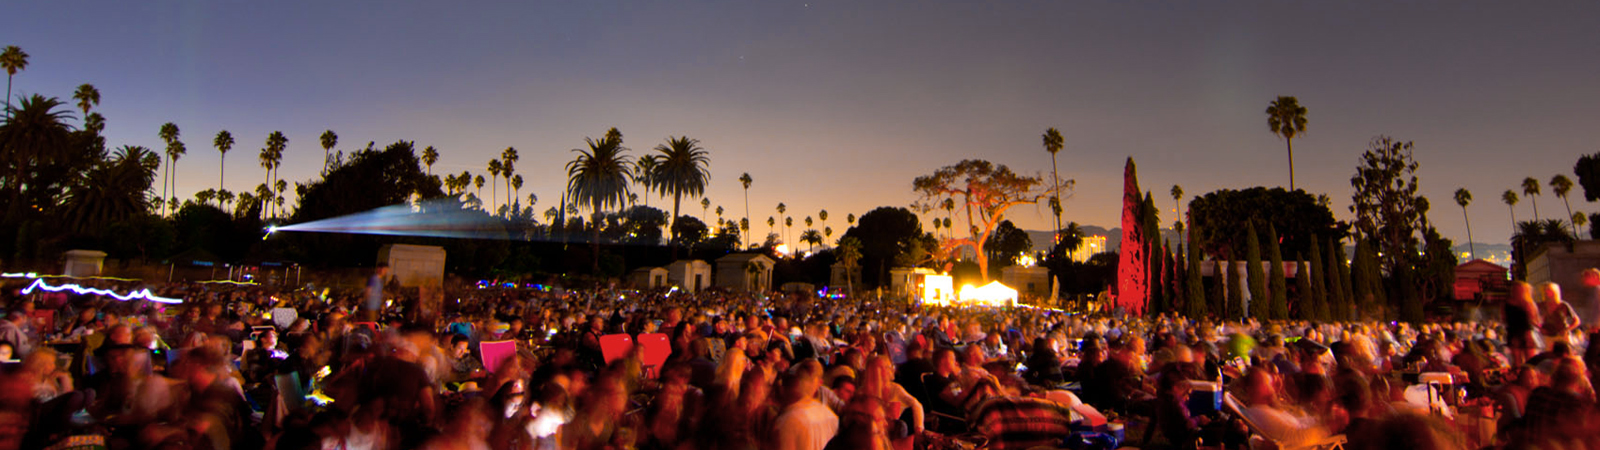 Cinespia screens outdoor movies at Hollywood Forever Cemetery all summer long. Buy tickets online. Image © Cinespia